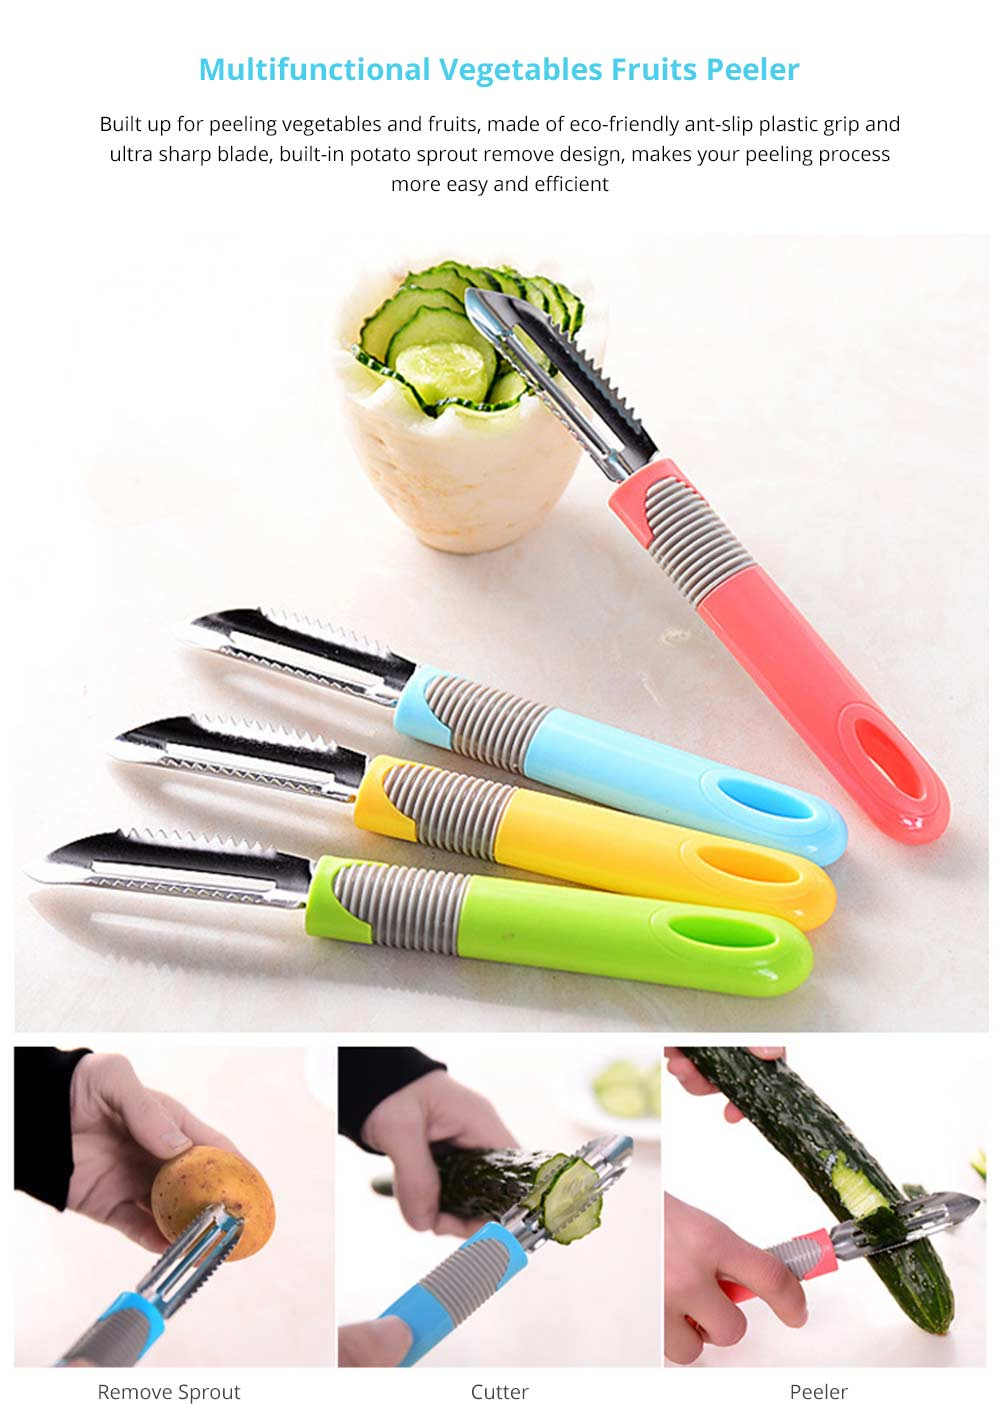 Universal Vegetables Fruits Peeler with Stainless Steel Ultra Blade Comfortable Anti-slip Grip Multifunctional Cutter Removing Potato Sprout Kitchen Gadget 6